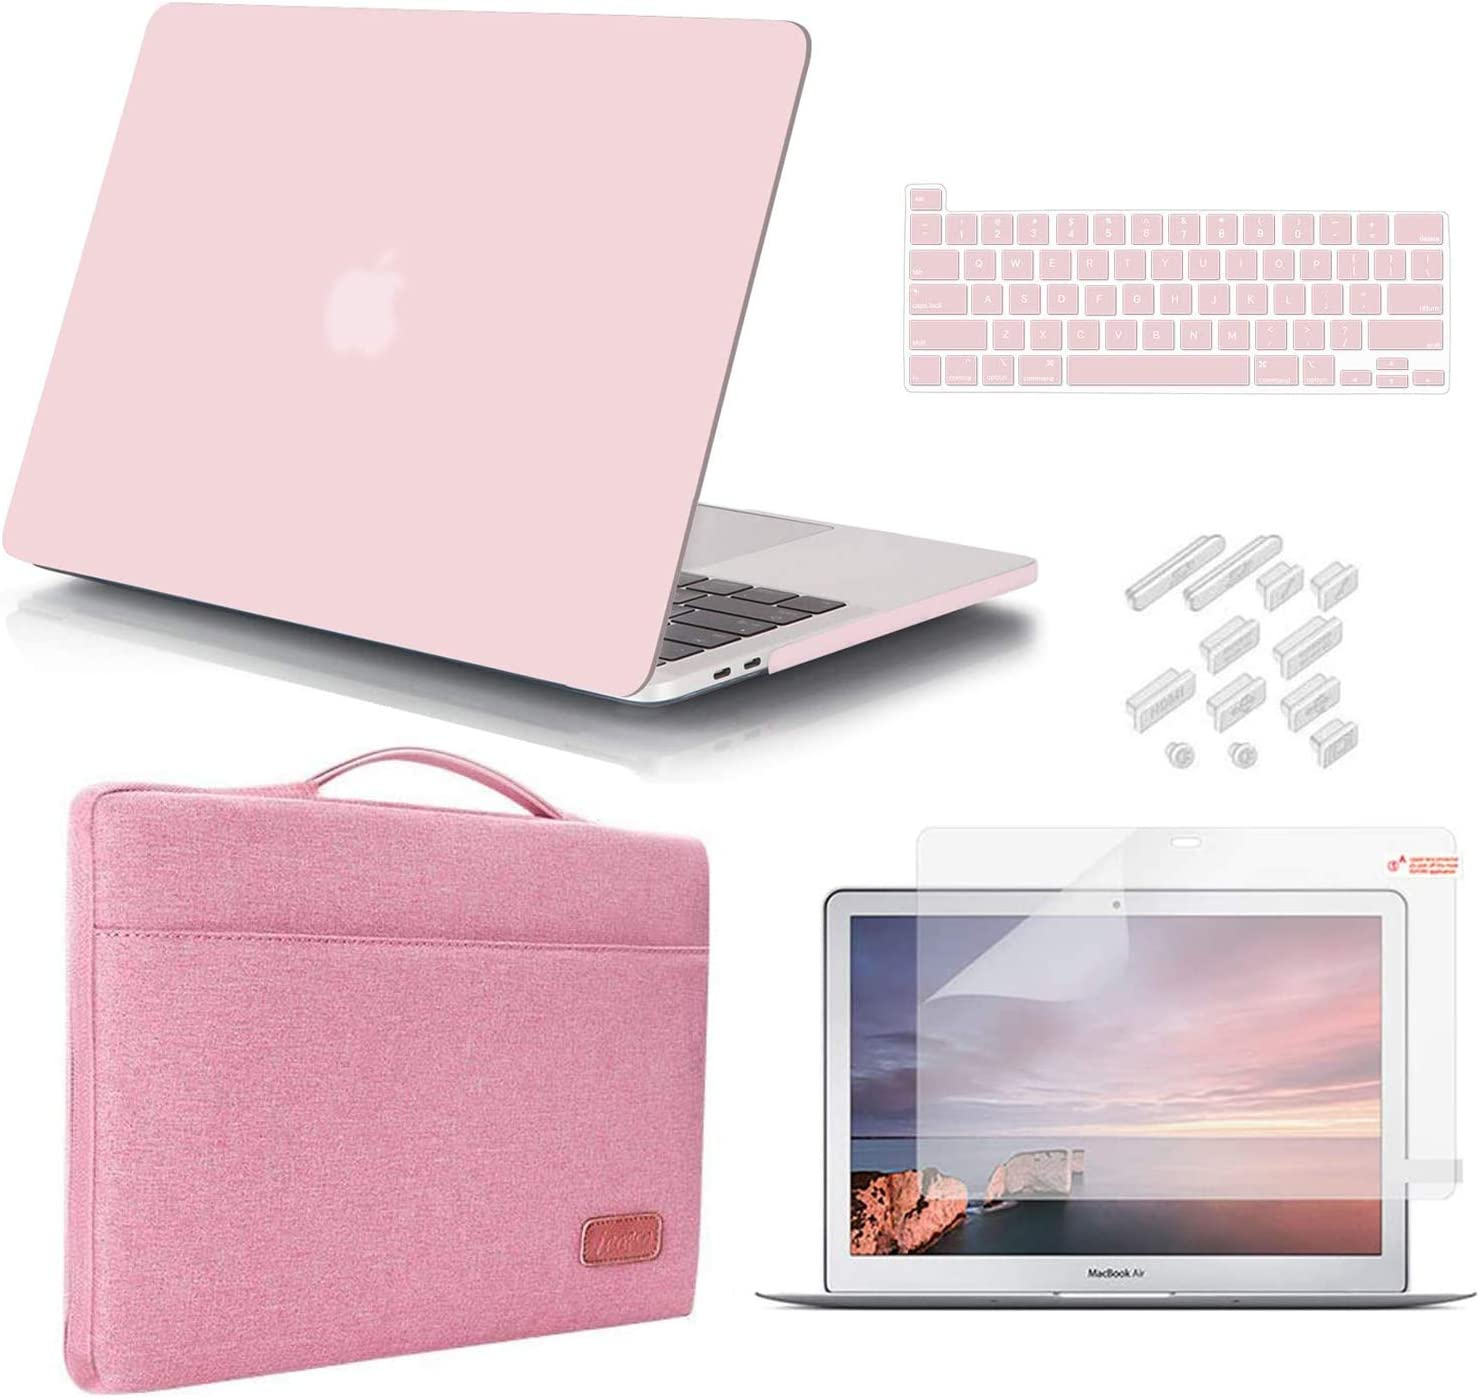 iCasso MacBook Pro 13 Inch Case 2020 Release Model A2251/A2289 Bundle 5 in 1, Hard Plastic Case, Sleeve, Screen Protector, Keyboard Cover & Dust Plug Compatible MacBook Pro 13'' (Rose Quartz)